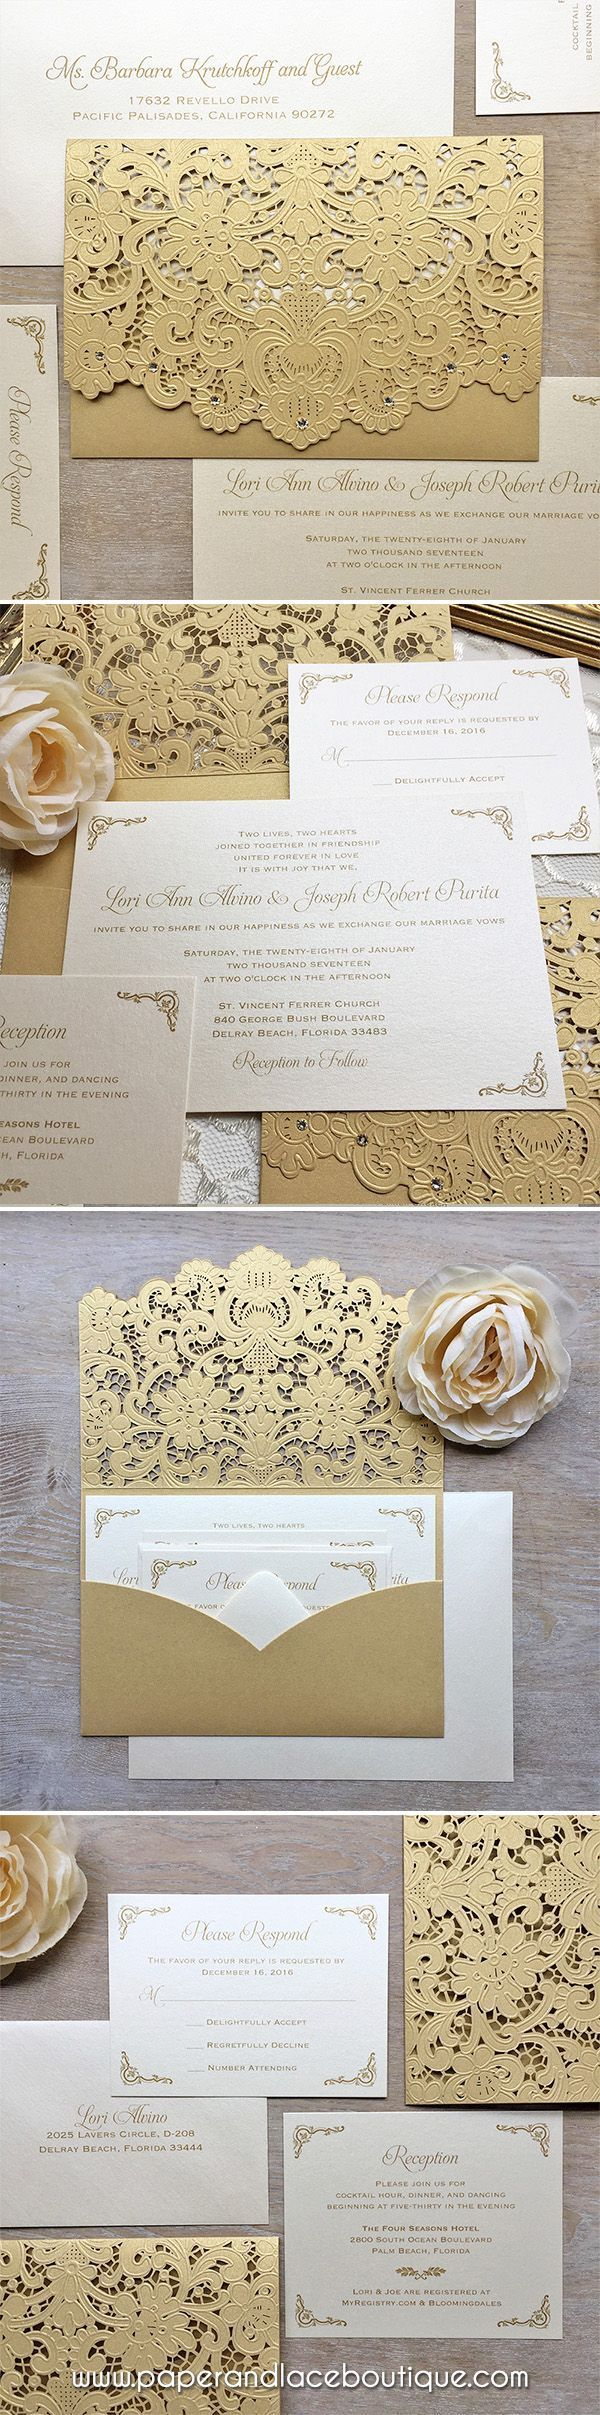 laser cut wedding invites canada%0A Ivory and rose gold laser cut wedding invitations